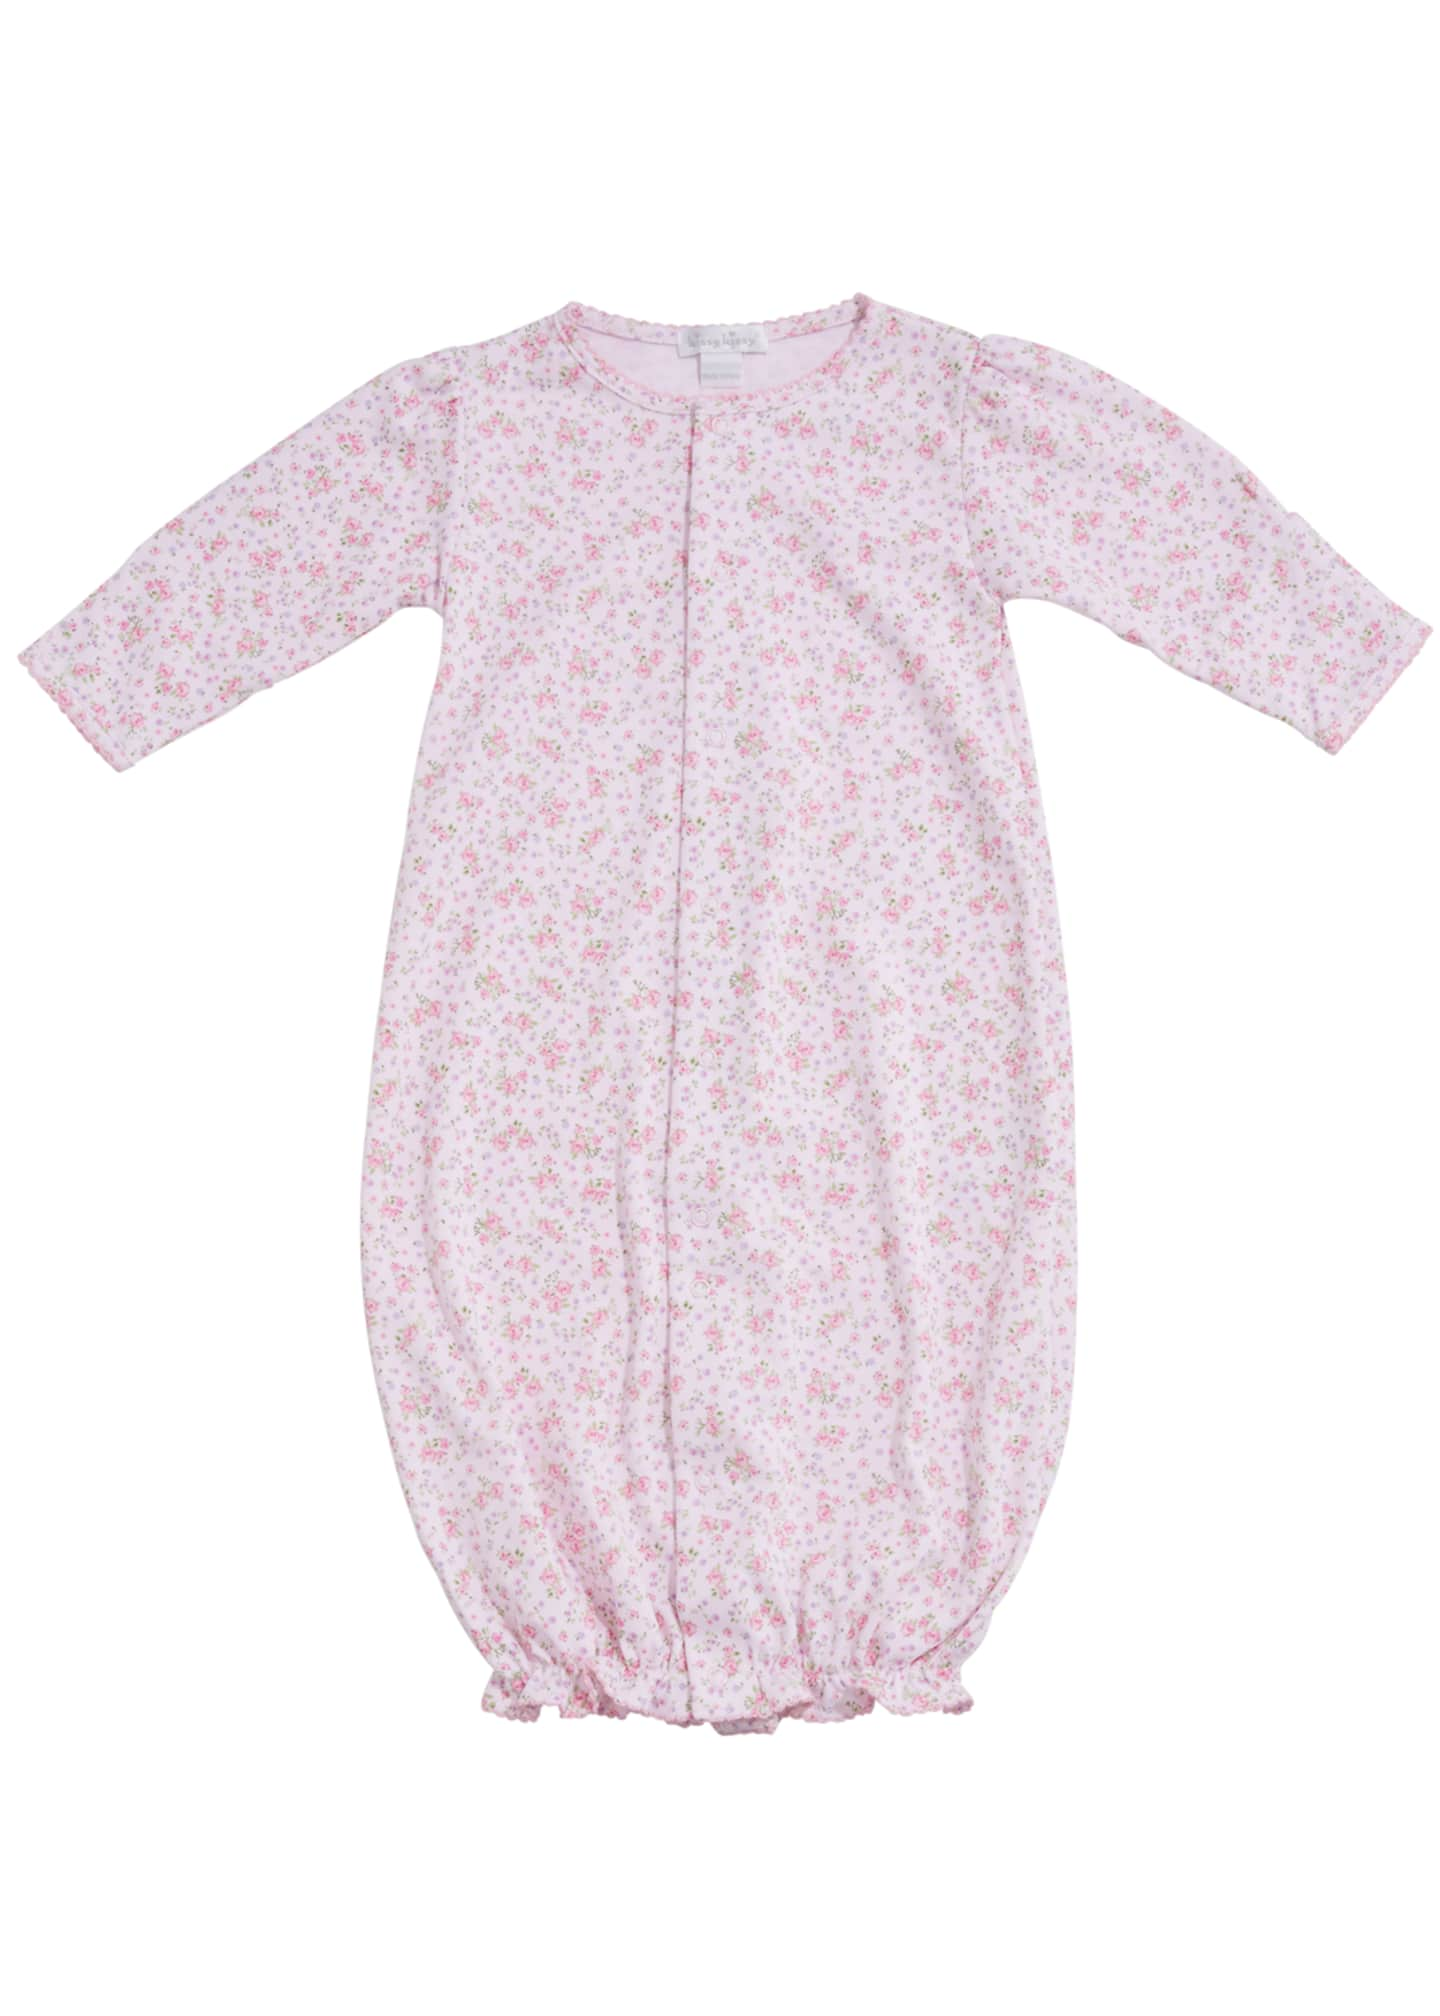 Kissy Kissy Dusty Rose Pima Convertible Gown, Size